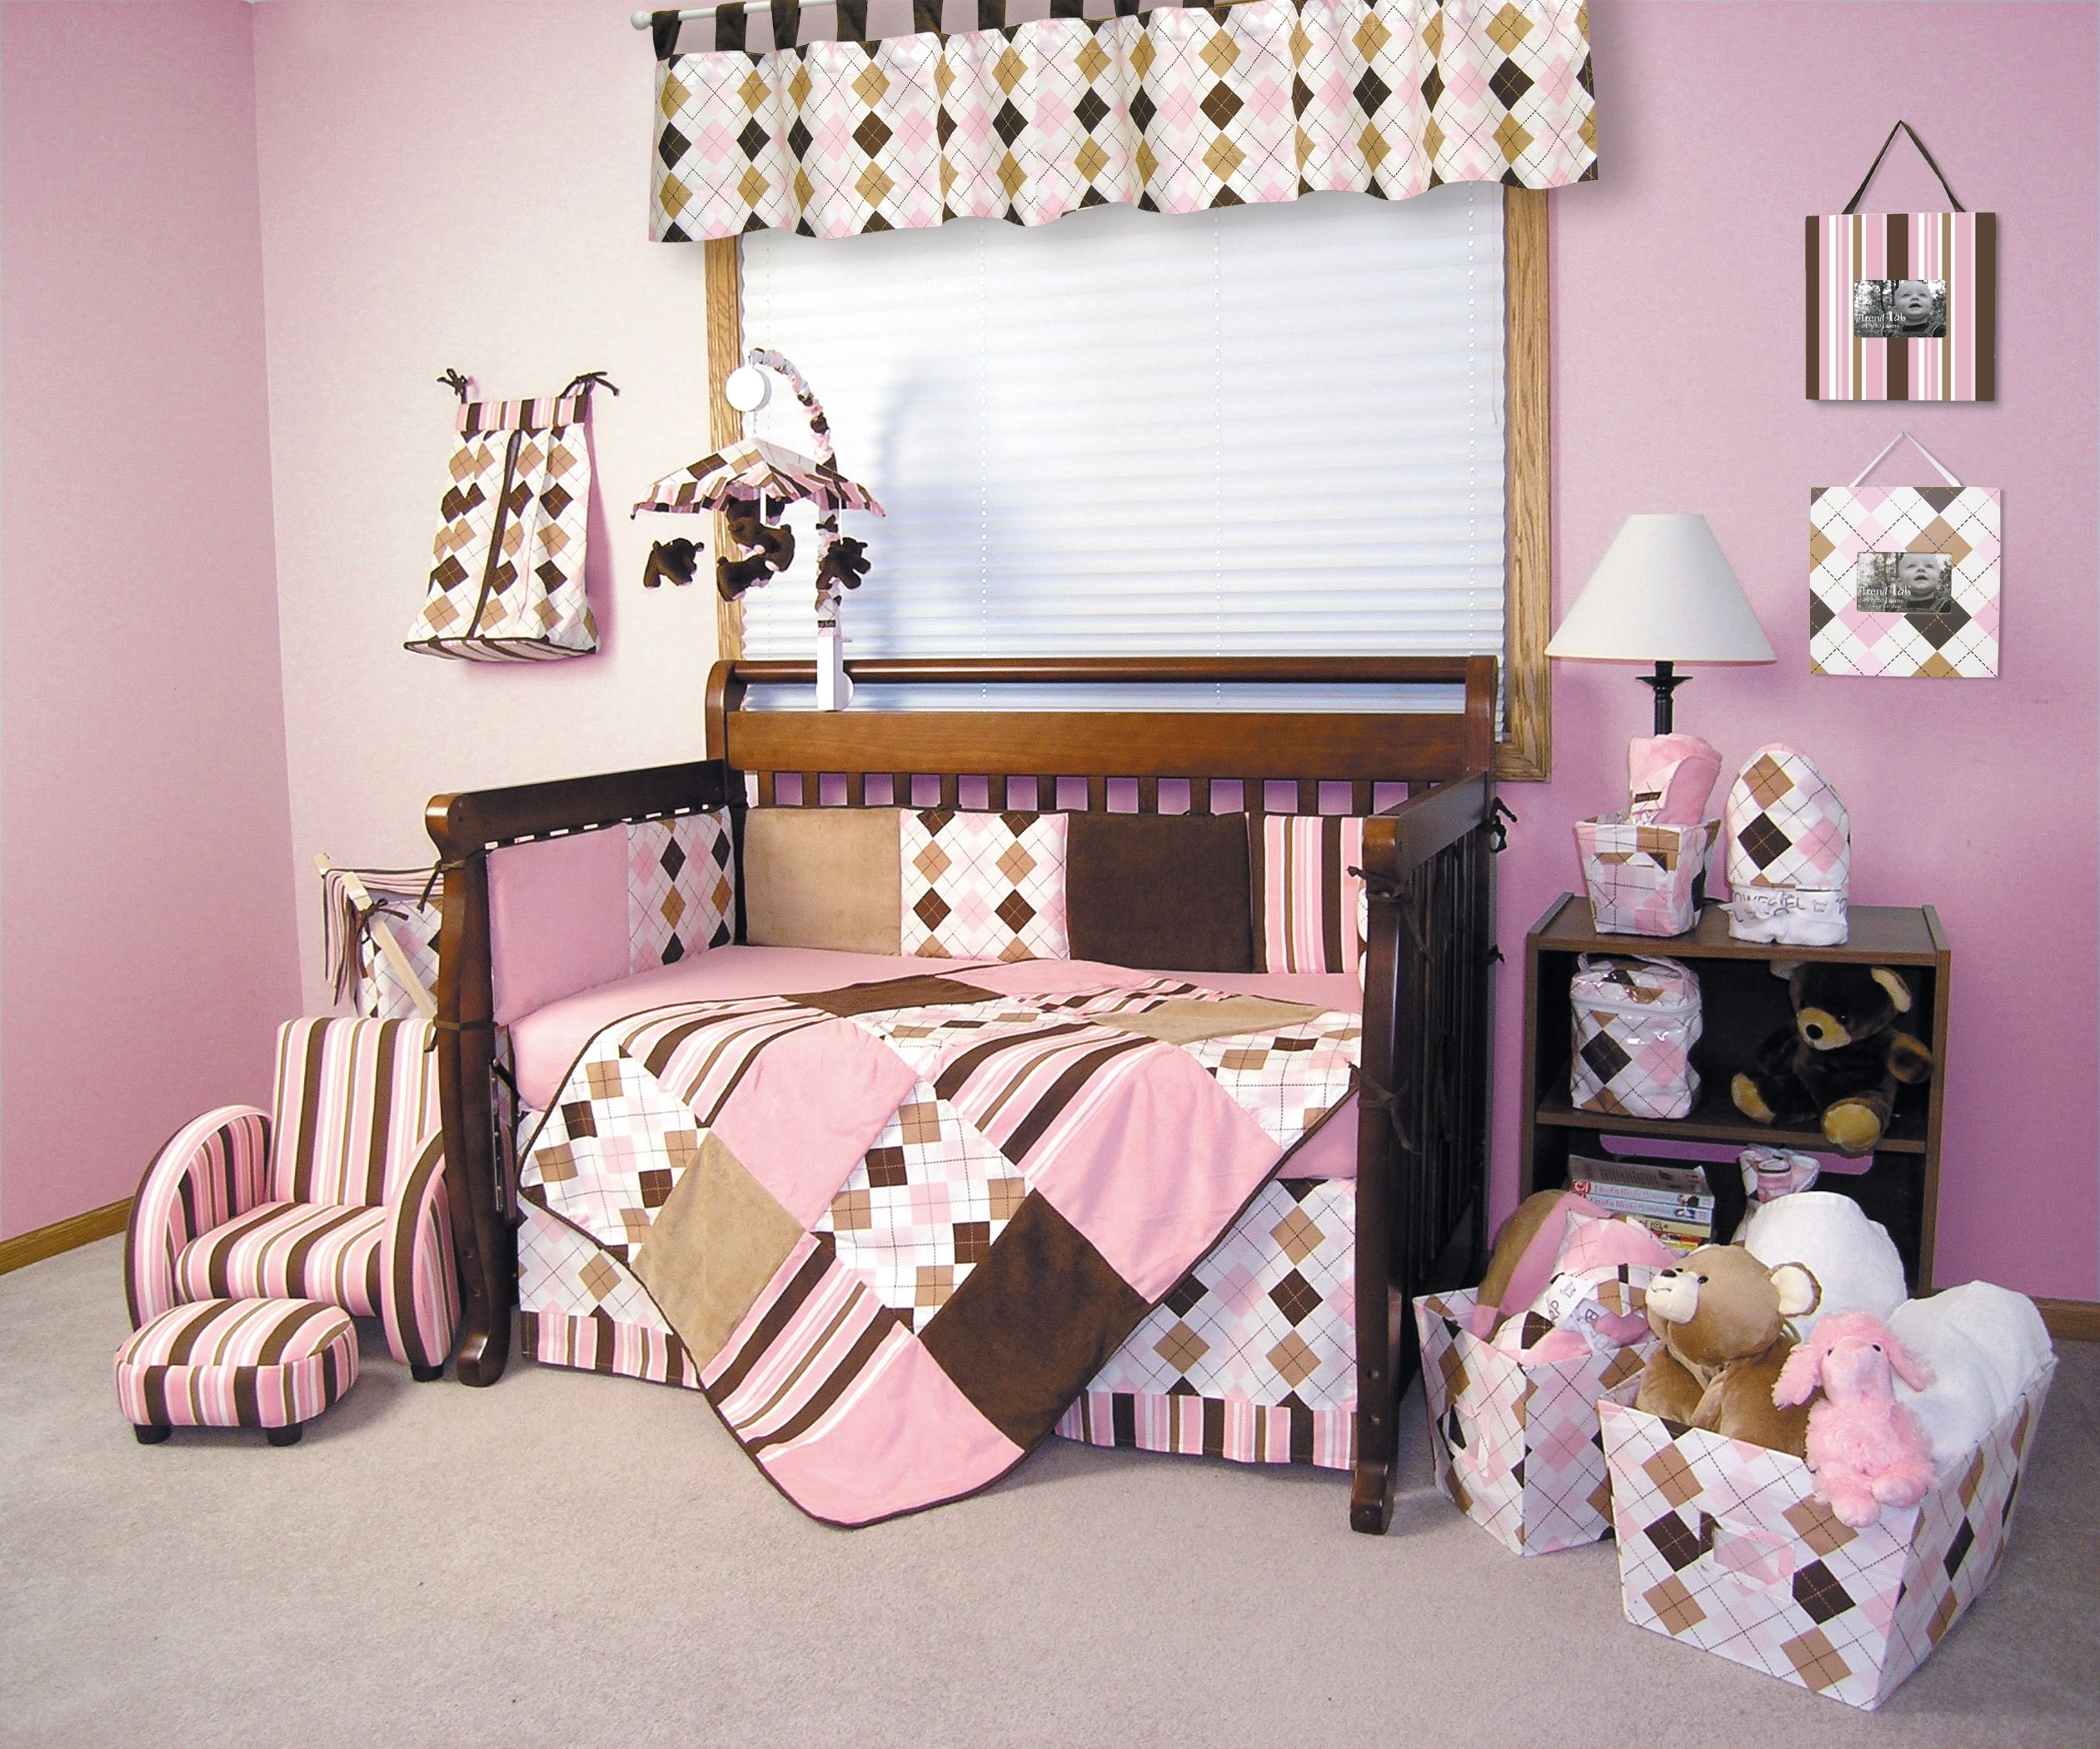 10 Lovely Pink And Brown Nursery Ideas pink and brown nursery purple baby girl bedroom ideas pink and 2020